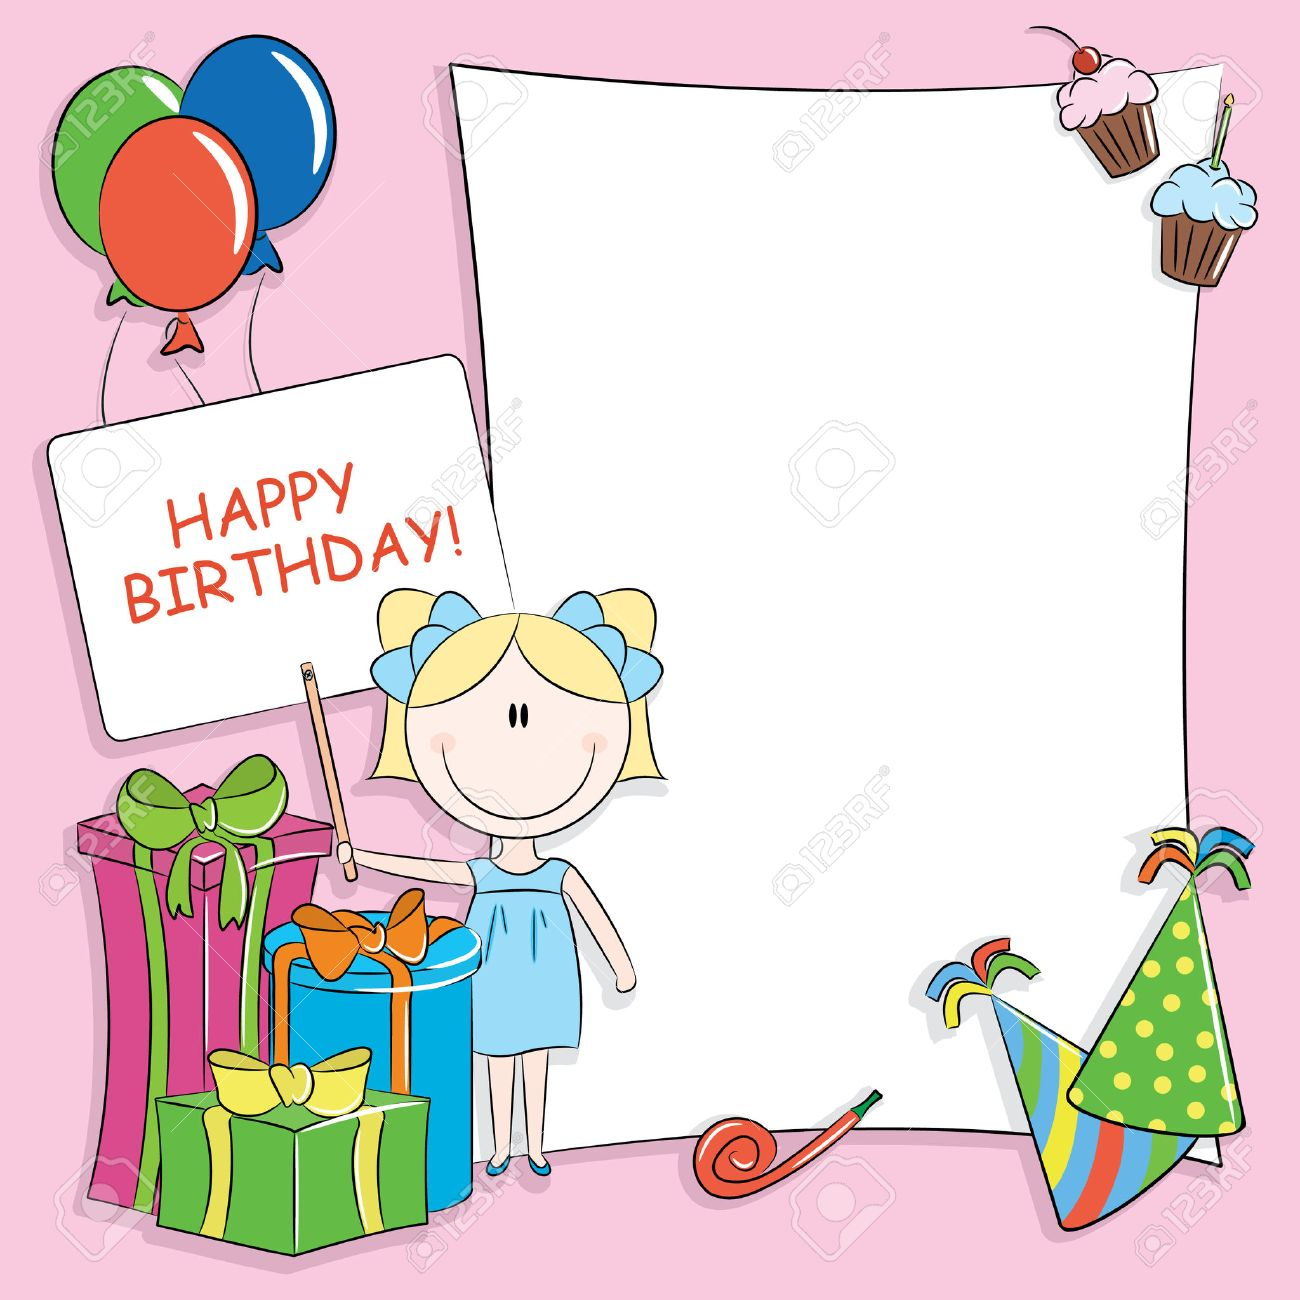 Happy birthday greeting cards – Latest Birthday Greeting Cards